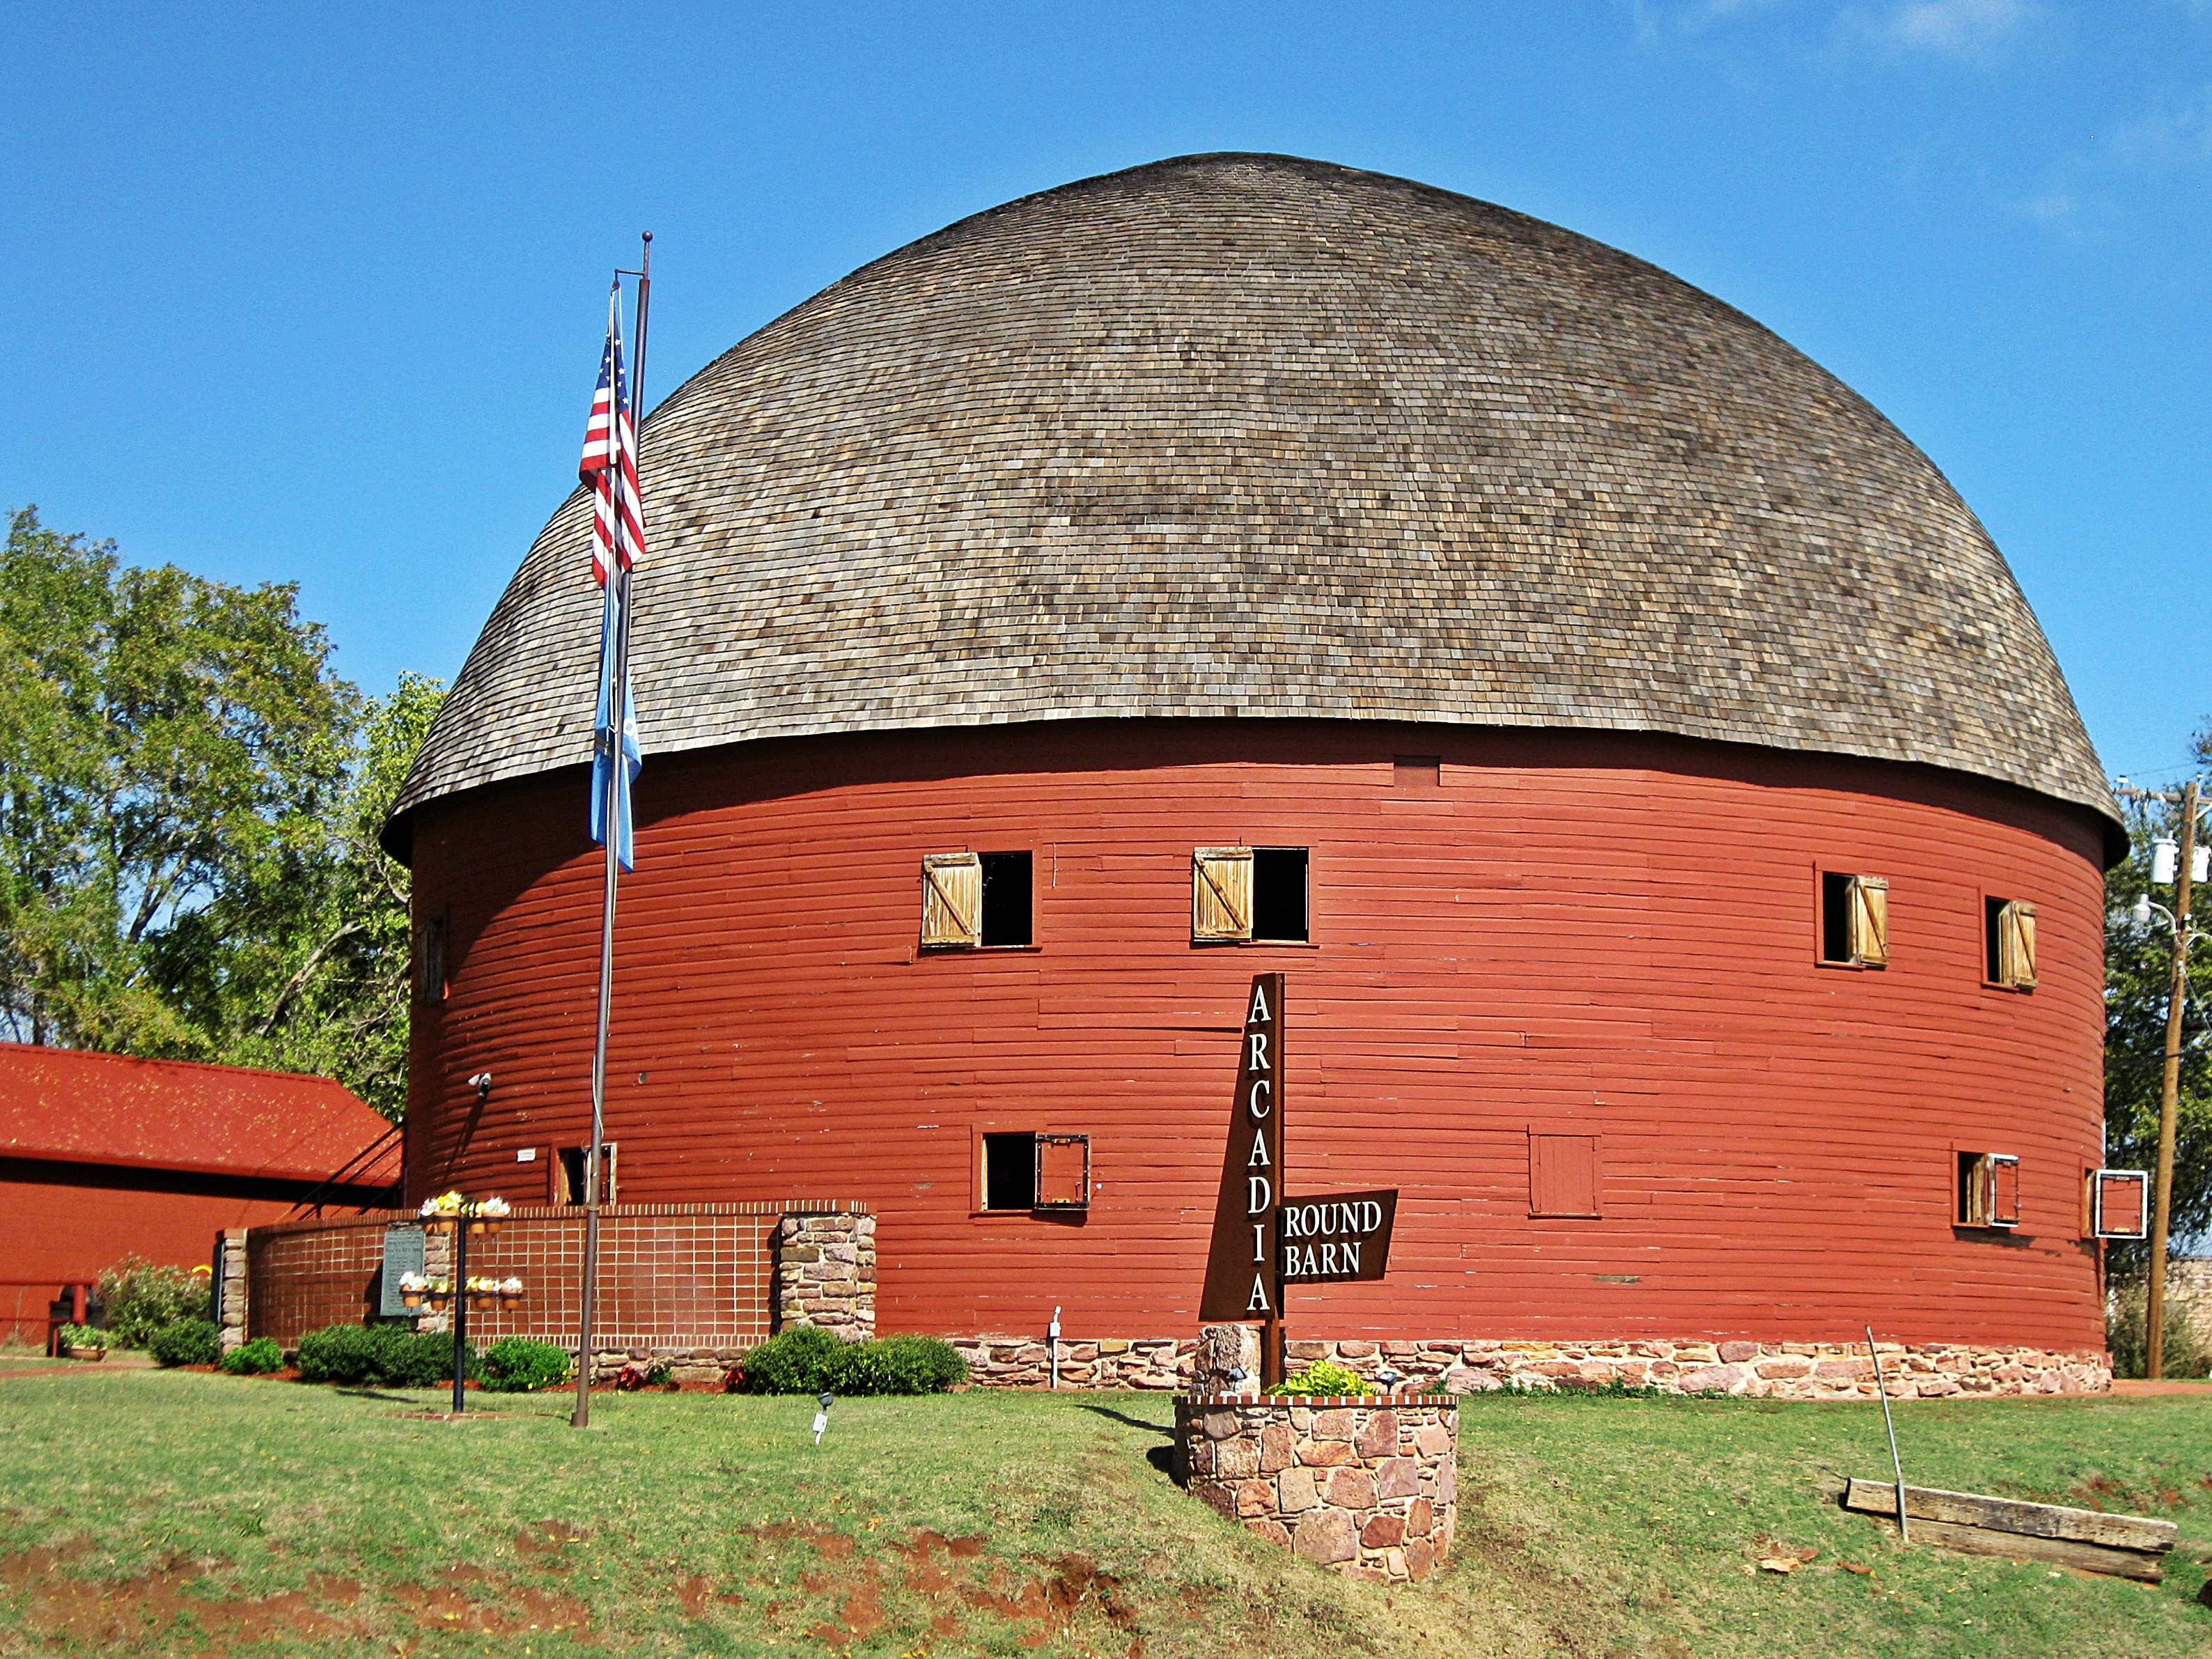 Arcadia Round Barn in Fall.JPG